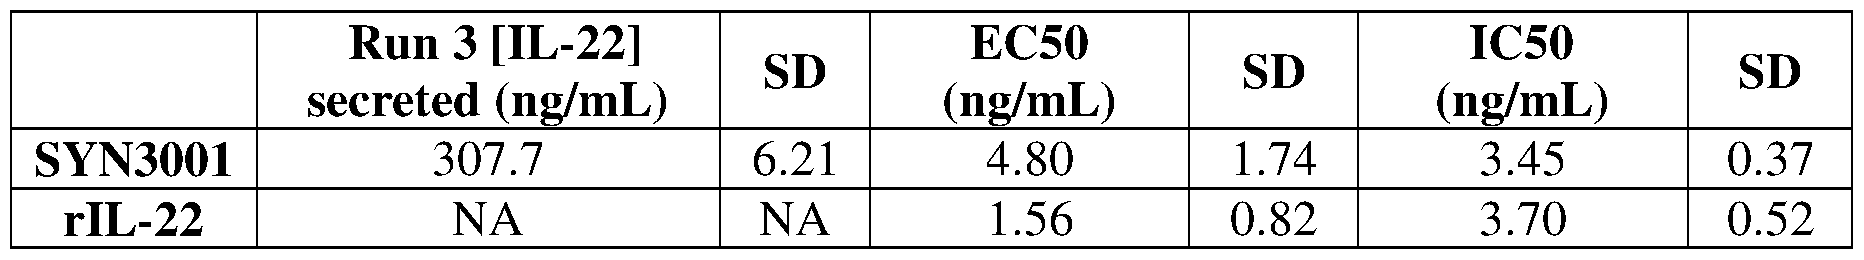 WO2017136792A2 - Bacteria engineered to treat diseases that benefit